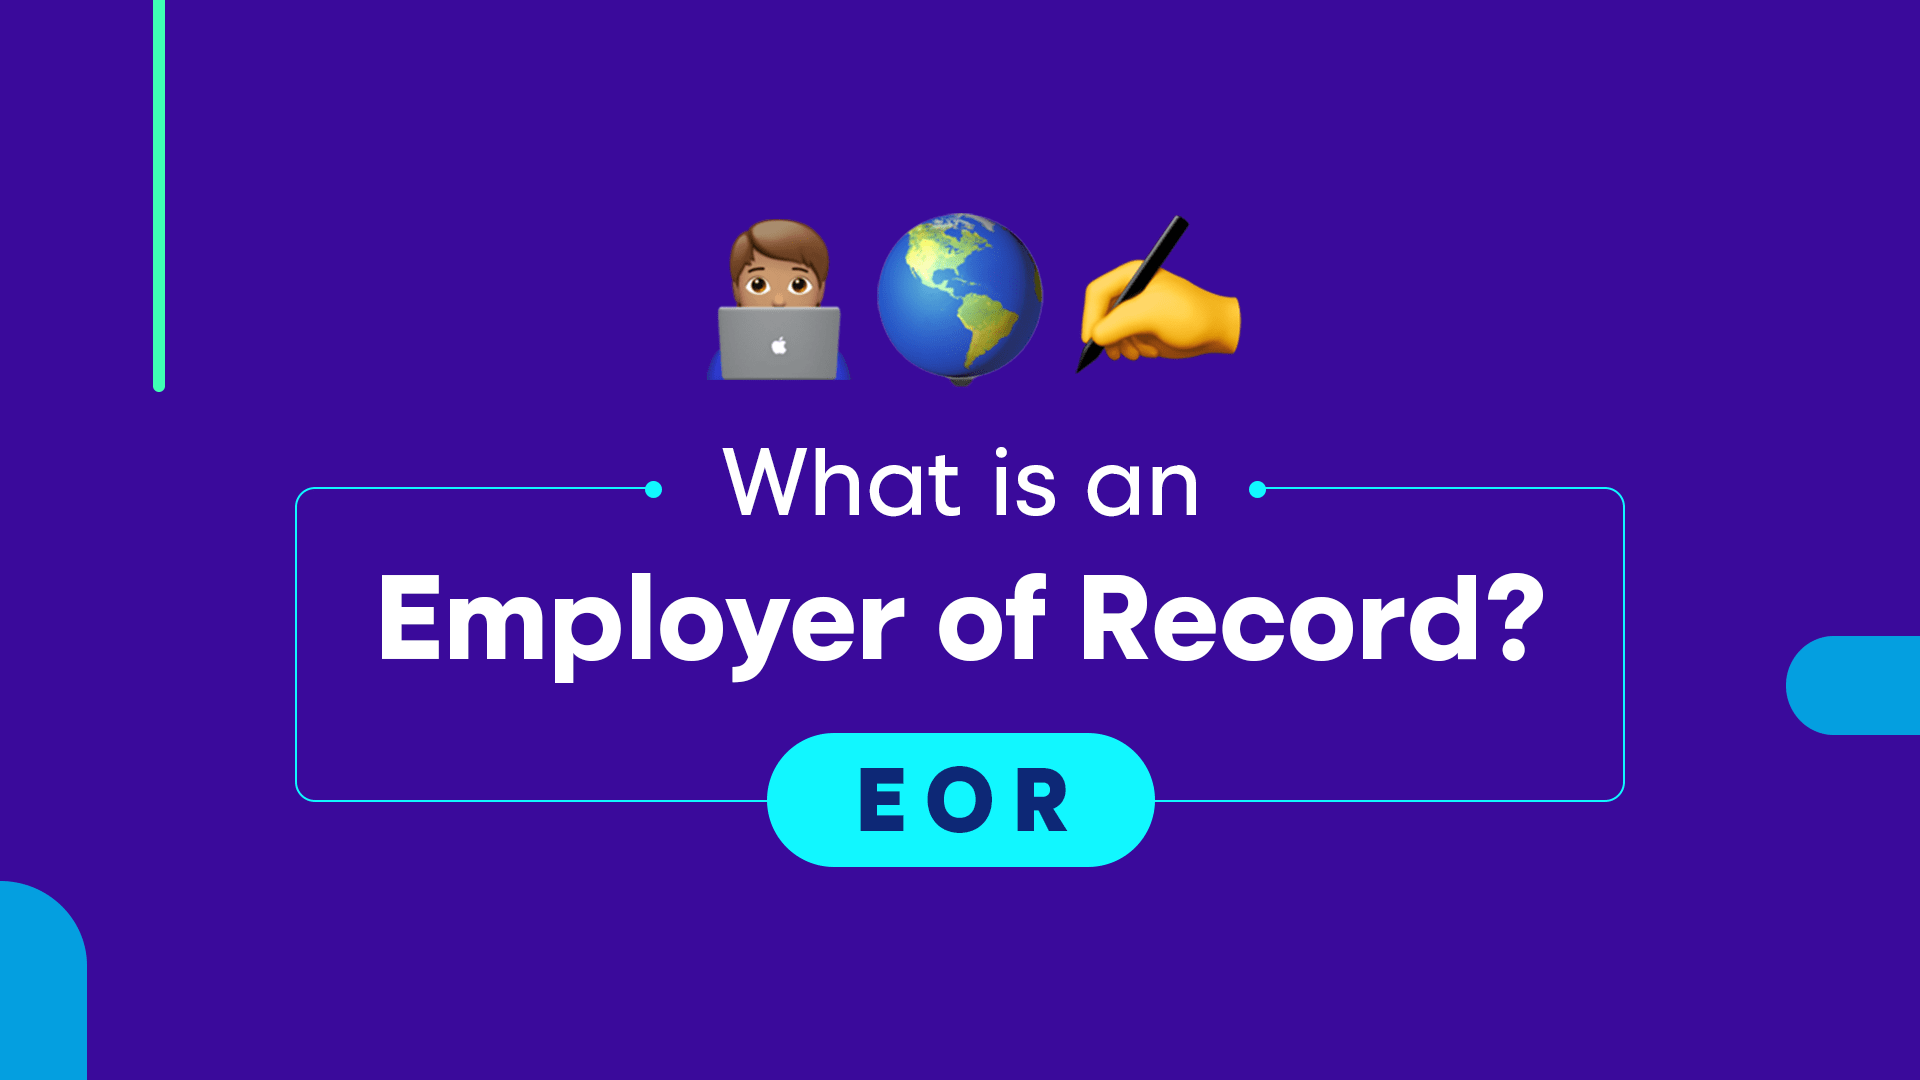 What is an Employer of Record (EOR)? - The Definitive Guide